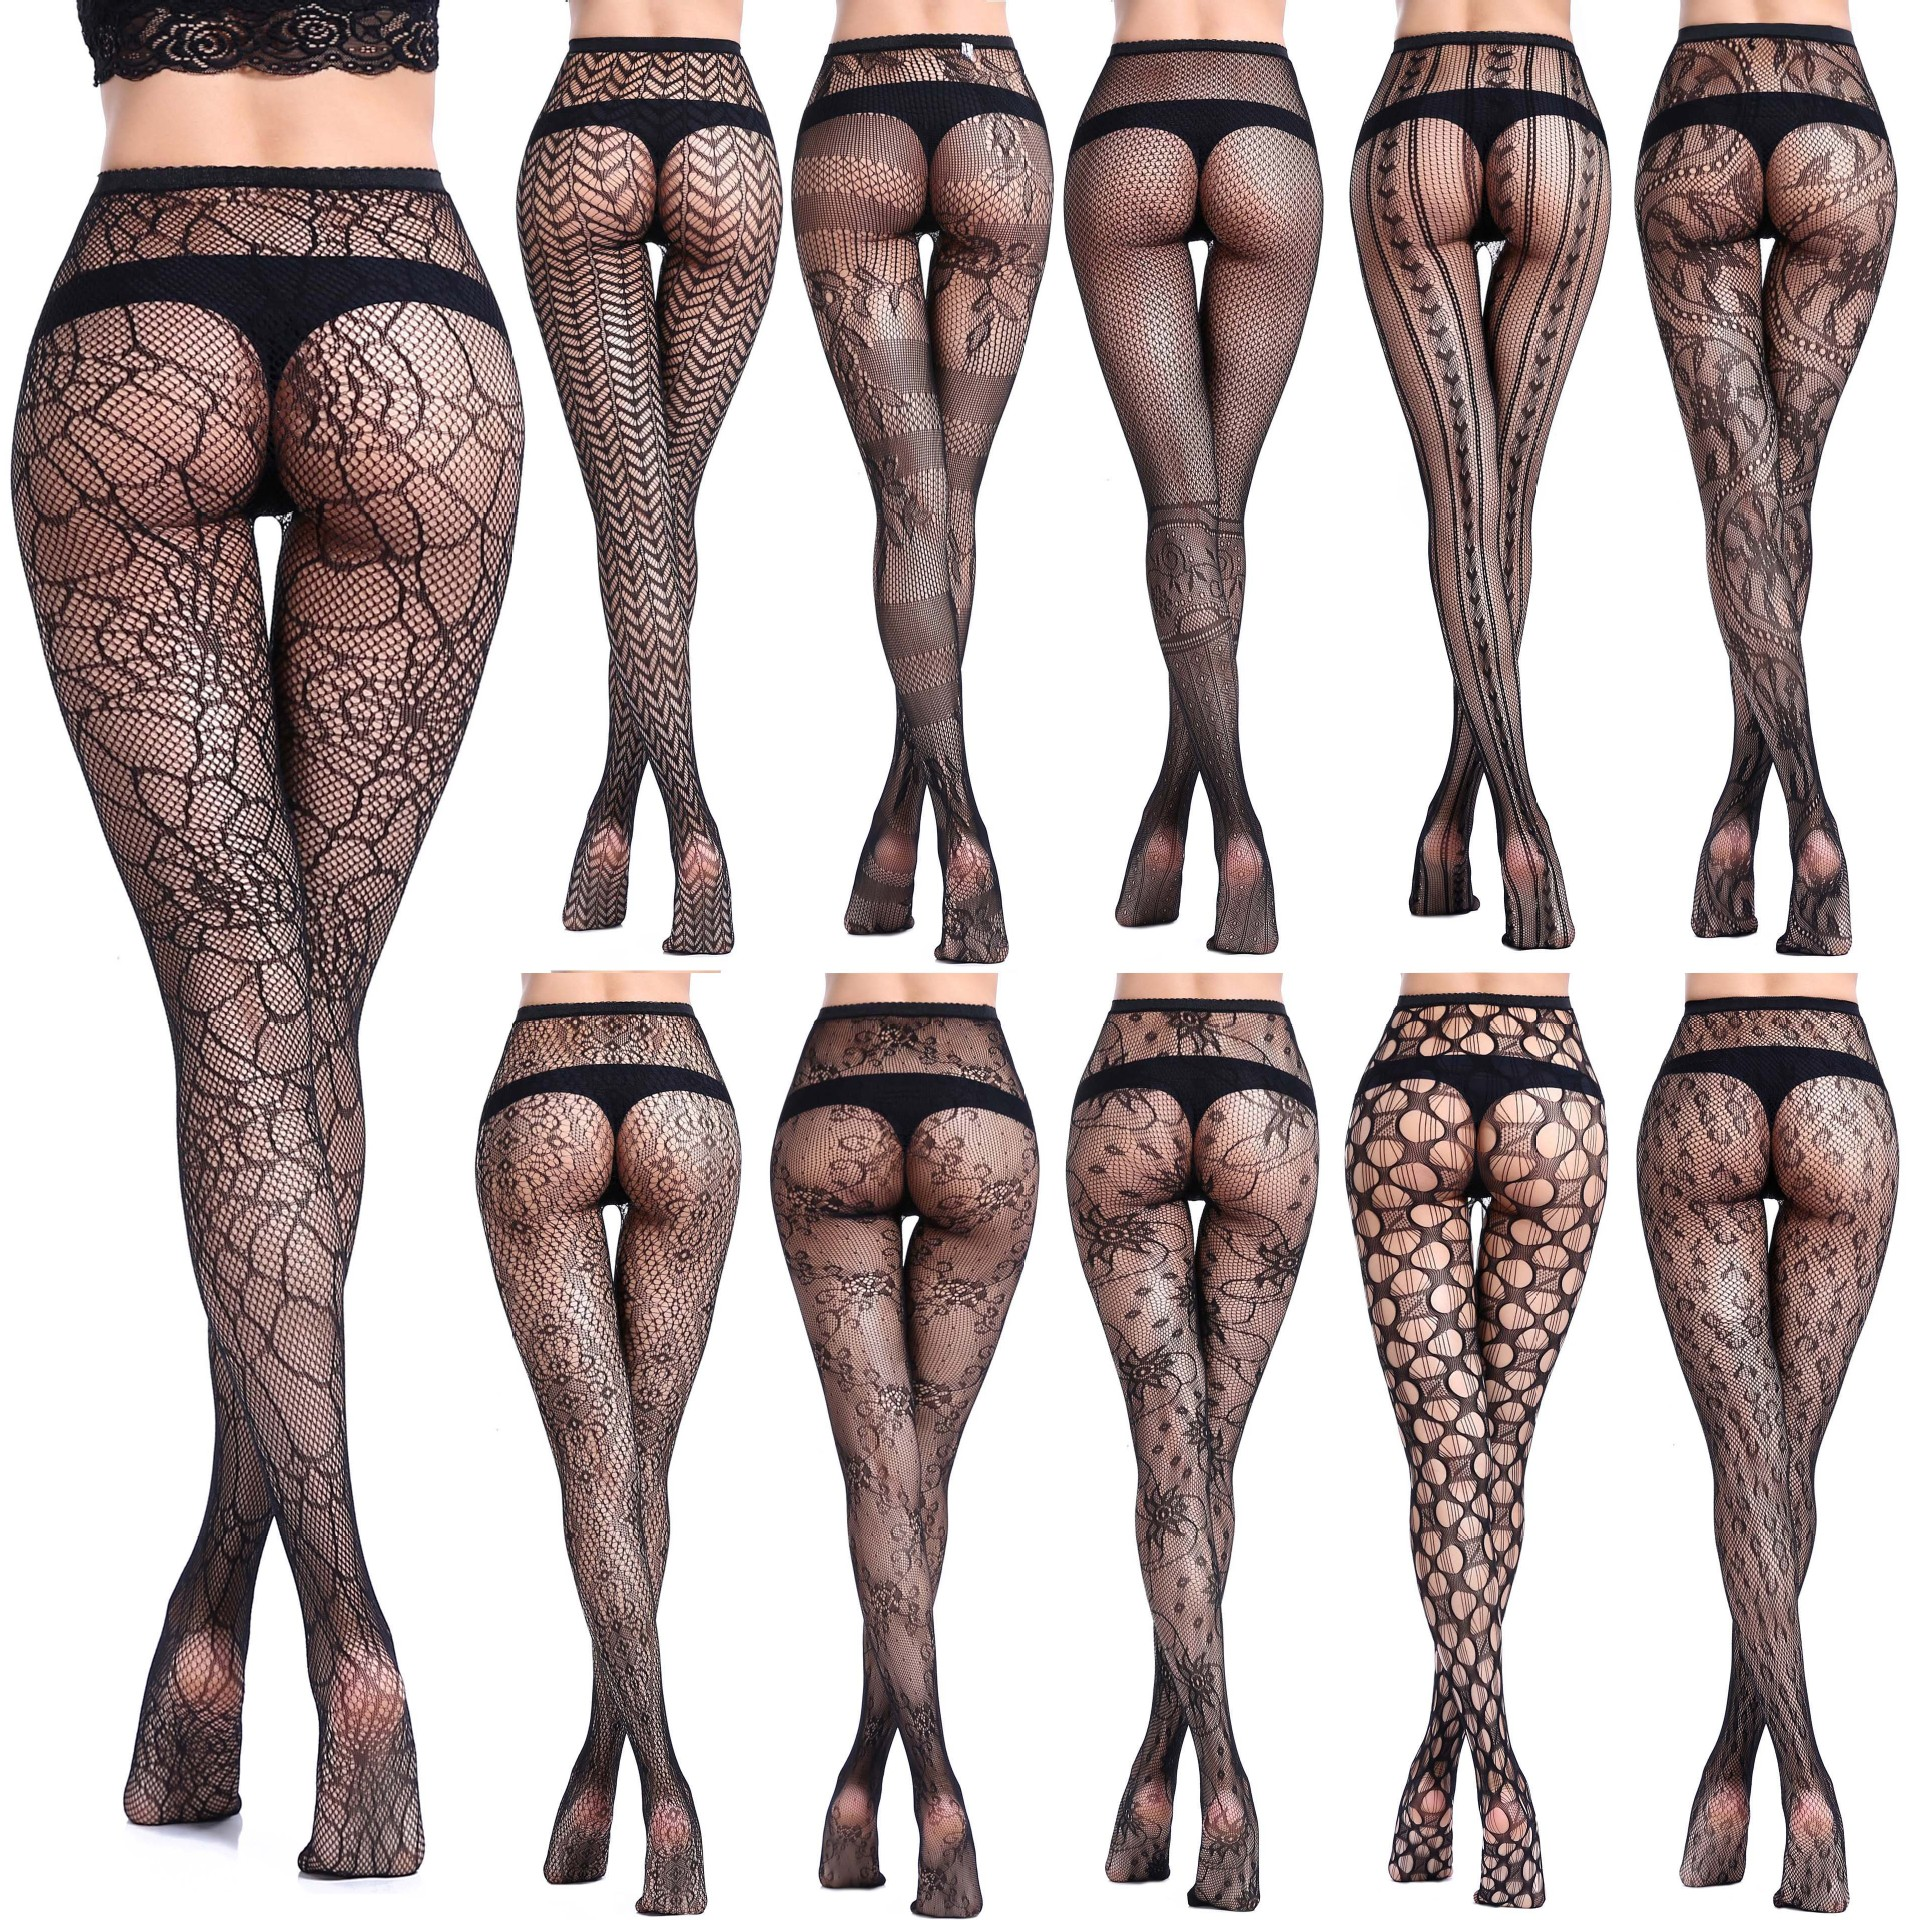 Sexy Mesh Stocking Tights For Women Fishnet Stockings Pantyhose Women Sexy Female Pantyhose Hosiery Elastic Tights With Pattern